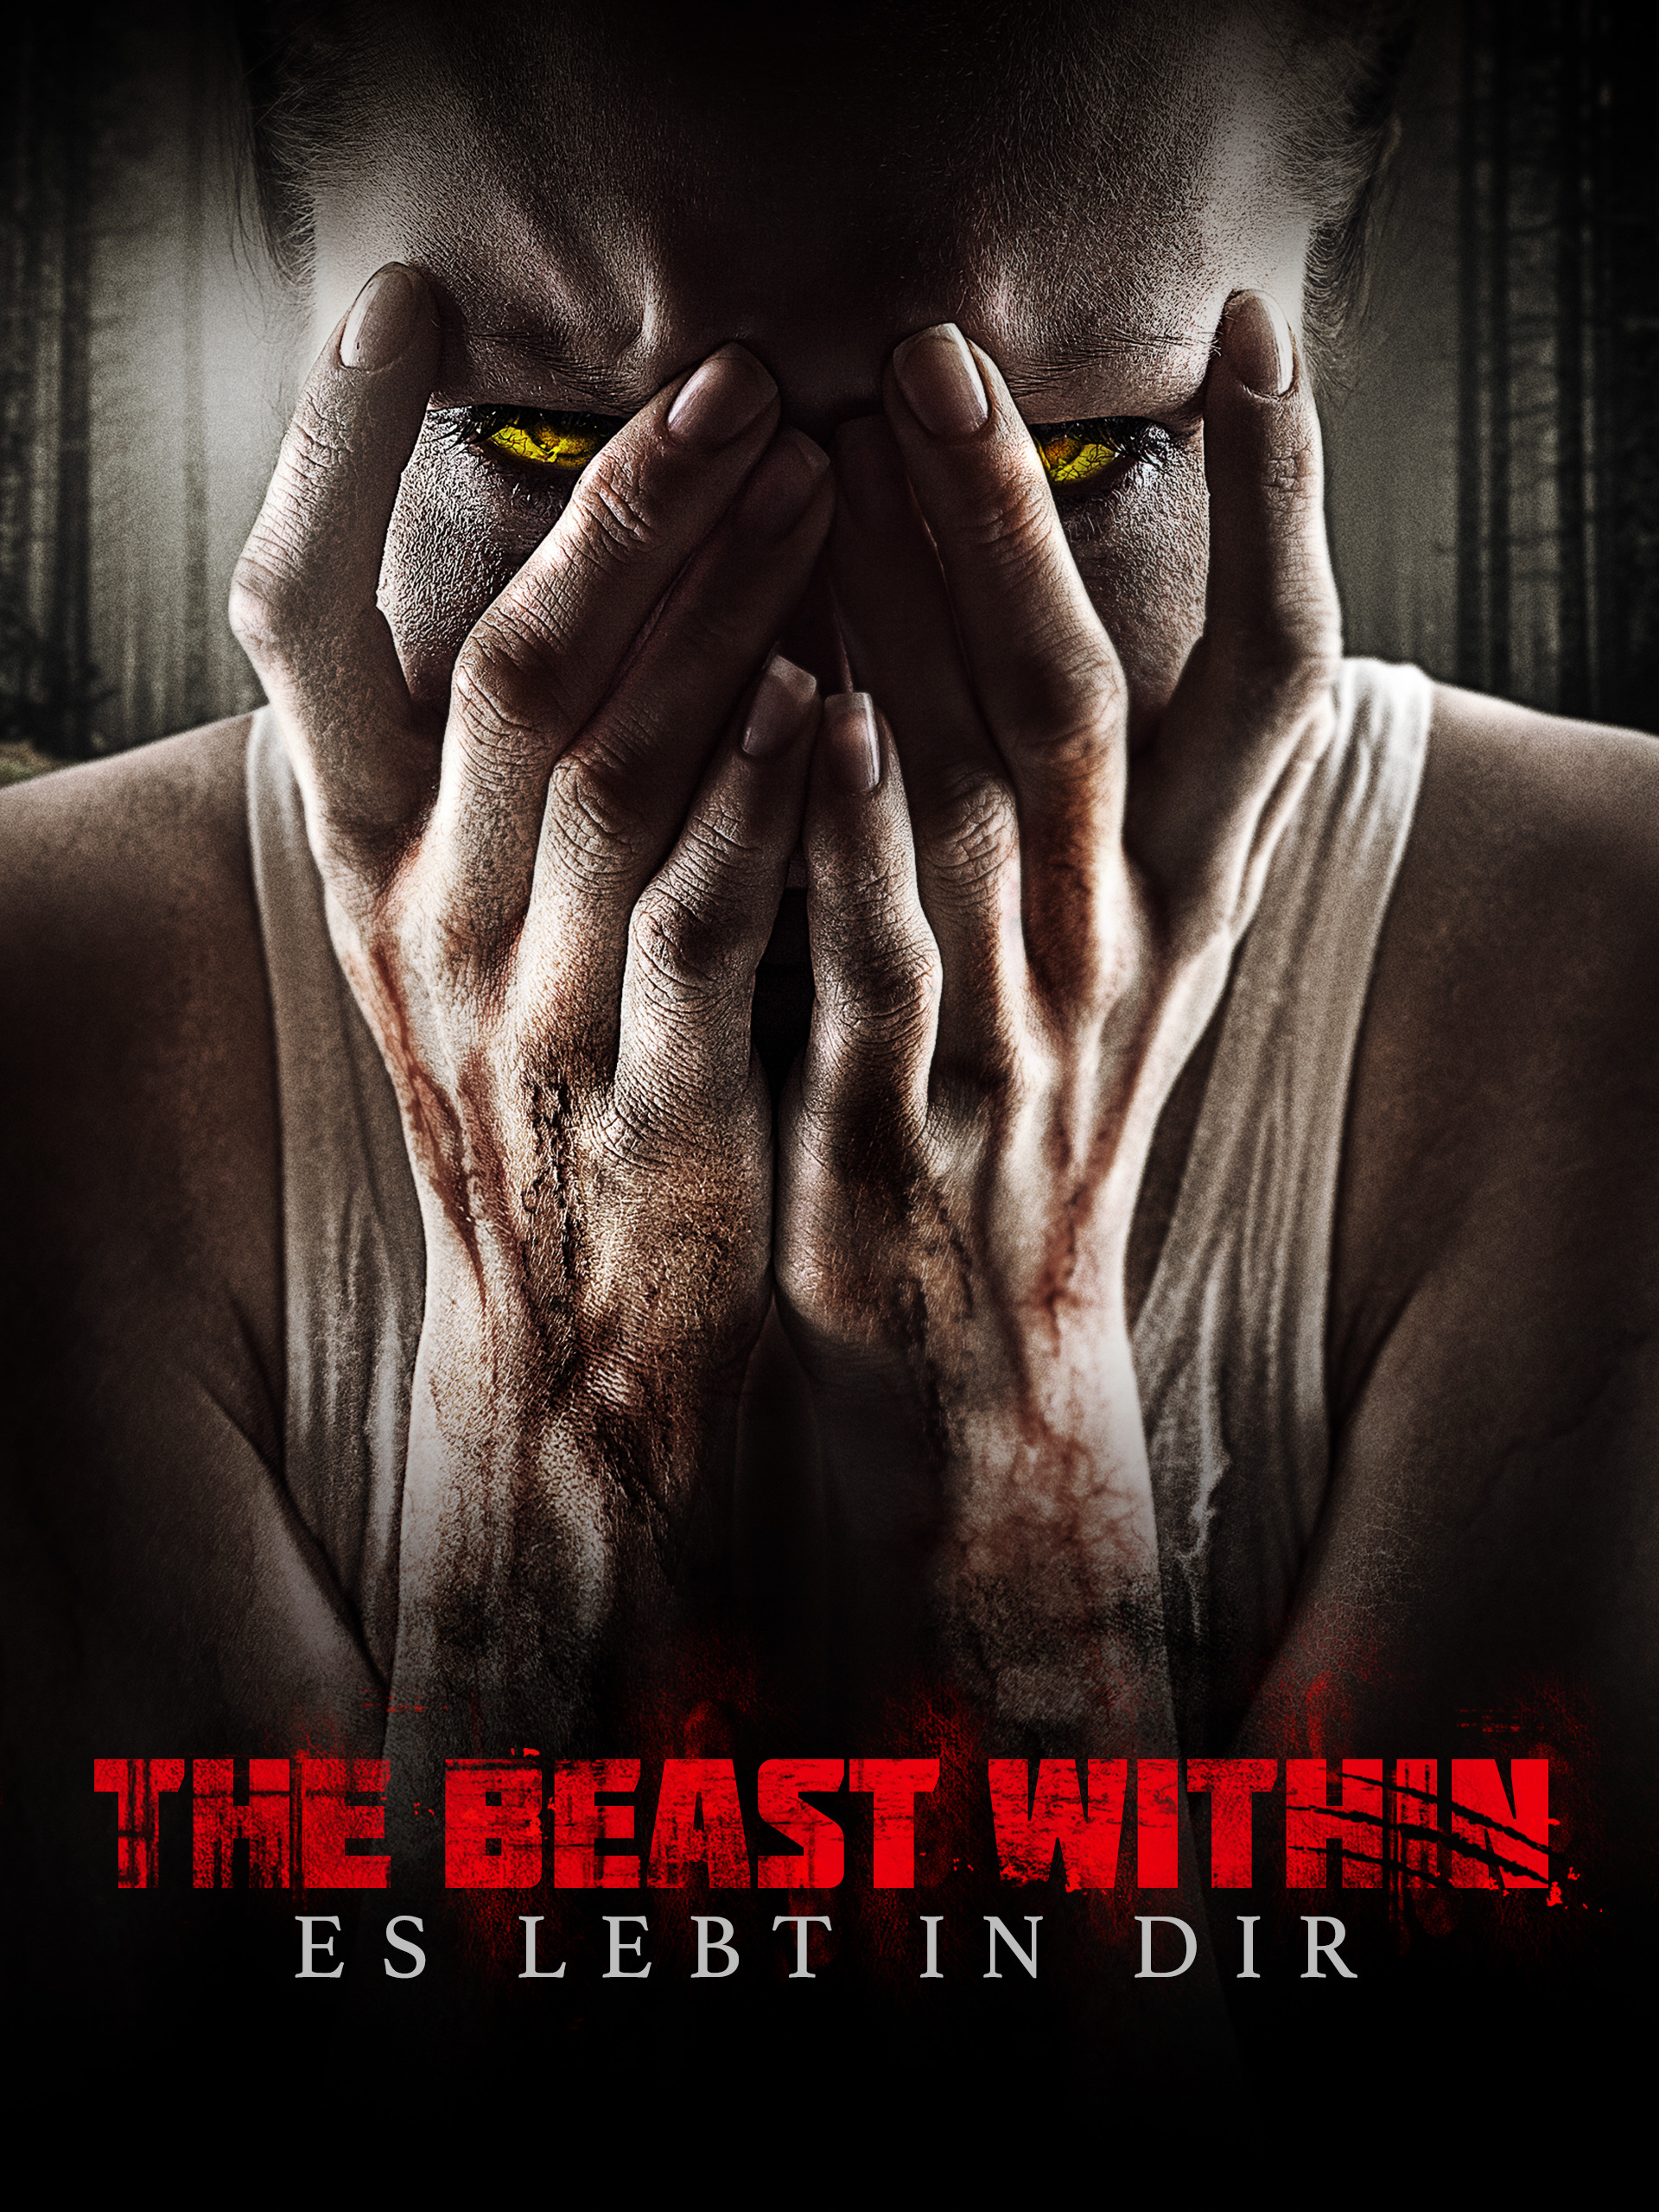 The Beast Within - Es lebt in Dir